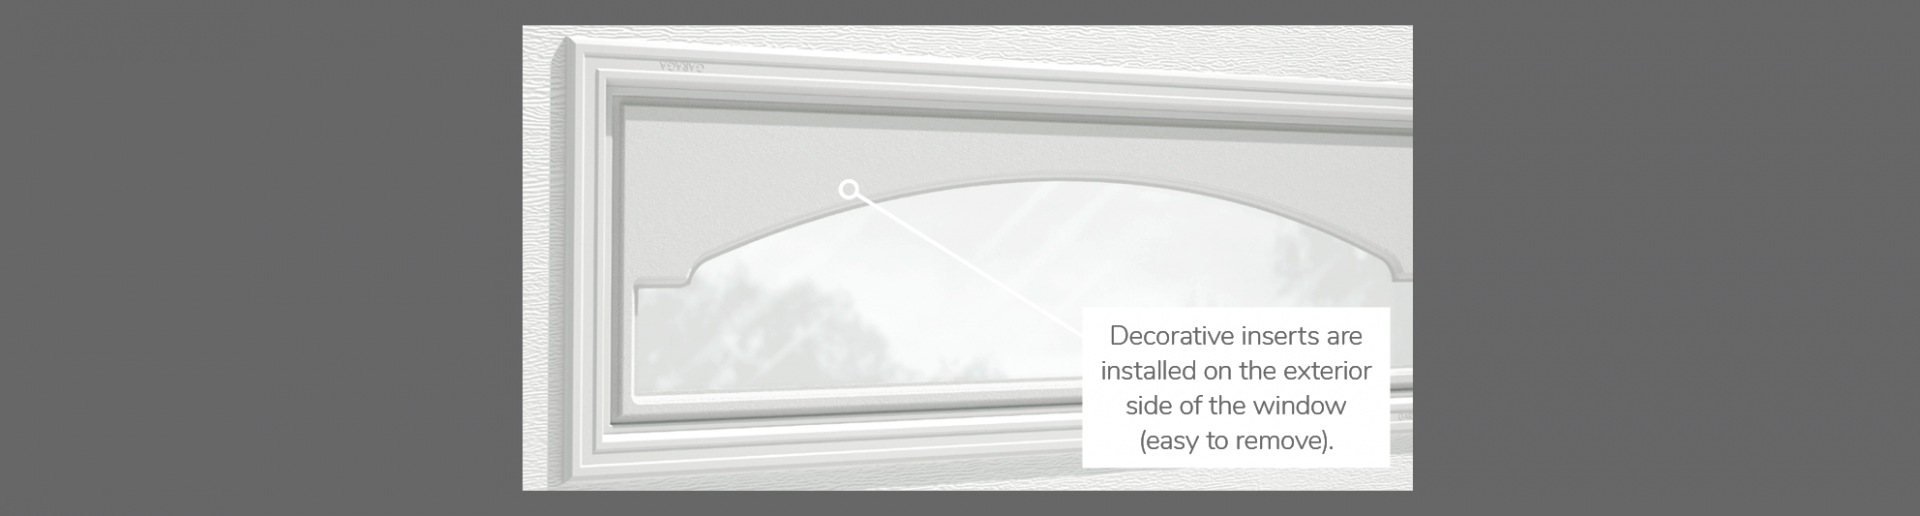 "Cathedral Decorative Insert, 40"" x 13"", available for door R-16 and R-12"